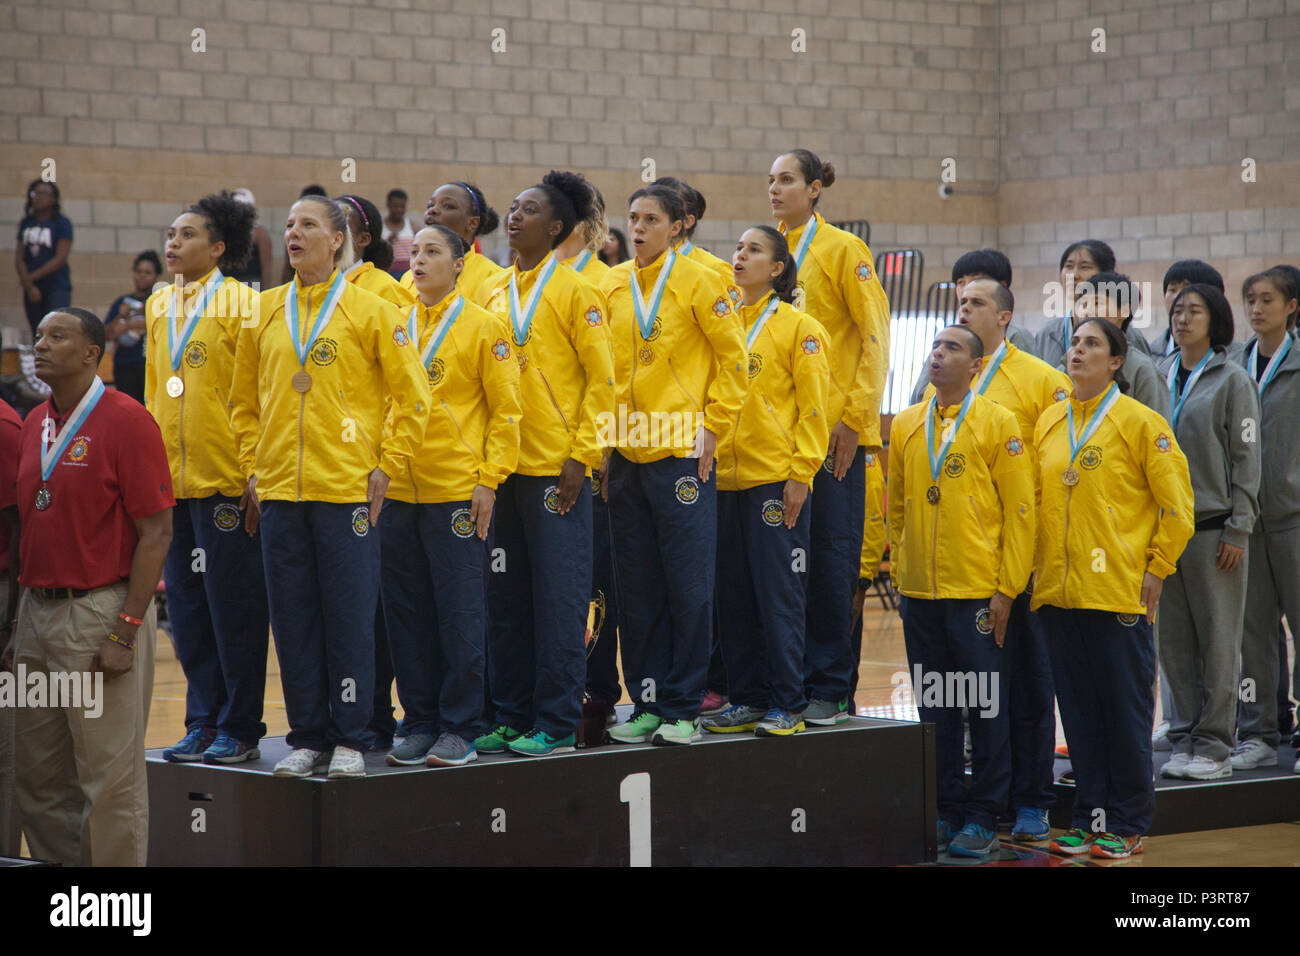 The team representing the Brazil in the World Military Women's Basketball Championship, stand at attention and sing their National Anthem during the 2016 Conseil International Du Sport Militaire (CISM) awards ceremony on Camp Pendleton, Calif., July 29, 2016. The CISM championships are hosted around the world and provide an avenue for the United States to project the positive image with valuable military-to-military engagement through sports. (U.S. Marine Corps photo by Cpl. Tyler S. Dietrich) - Stock Image